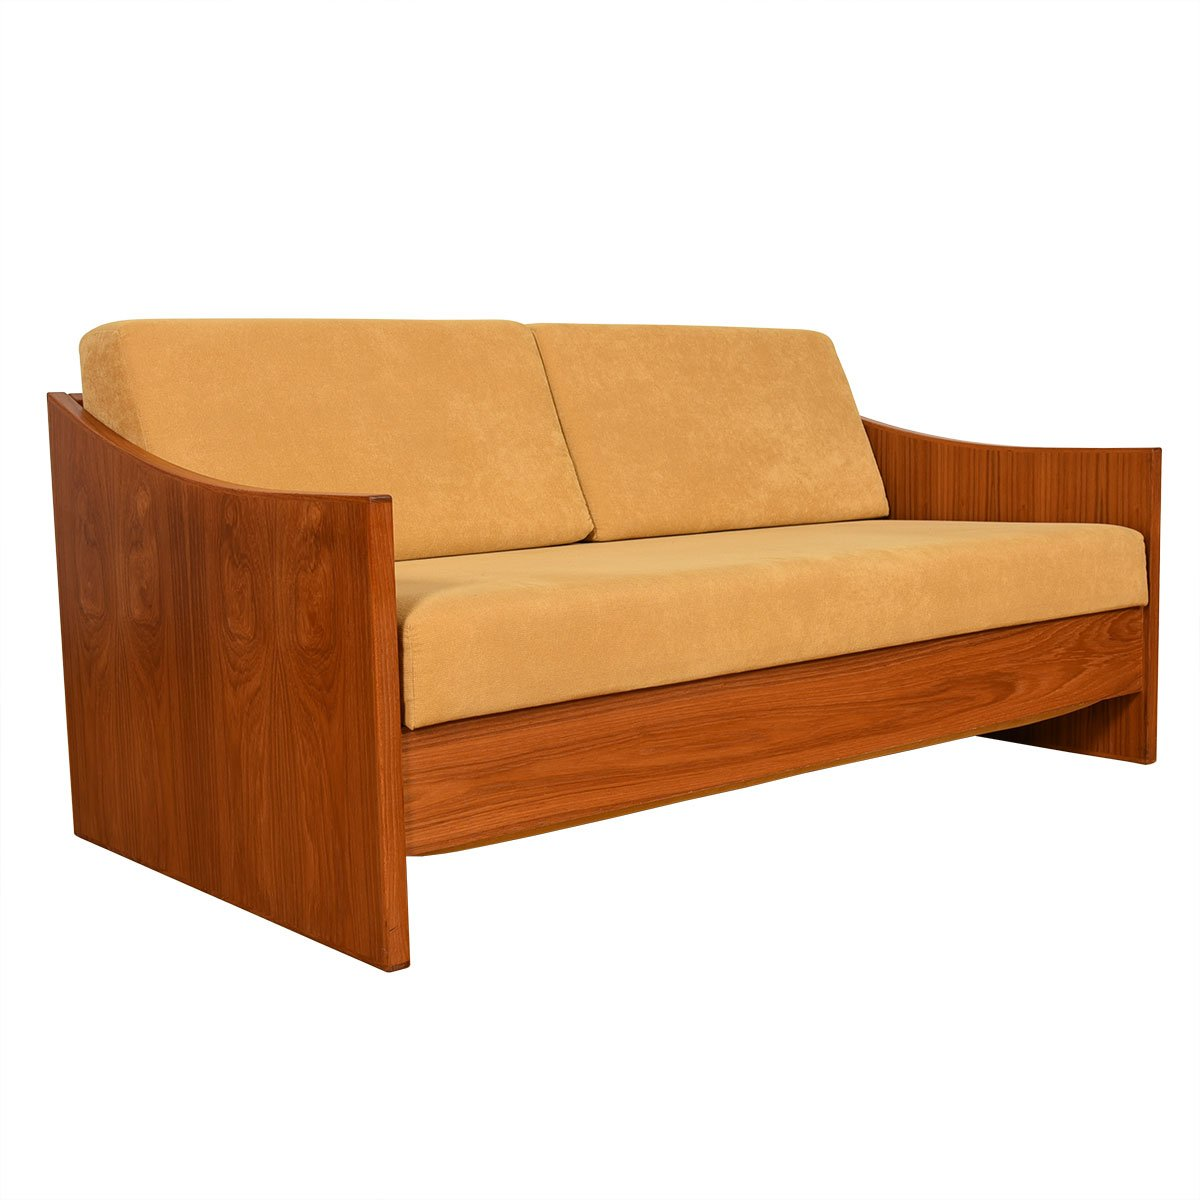 Danish Modern Teak Expanding Daybed